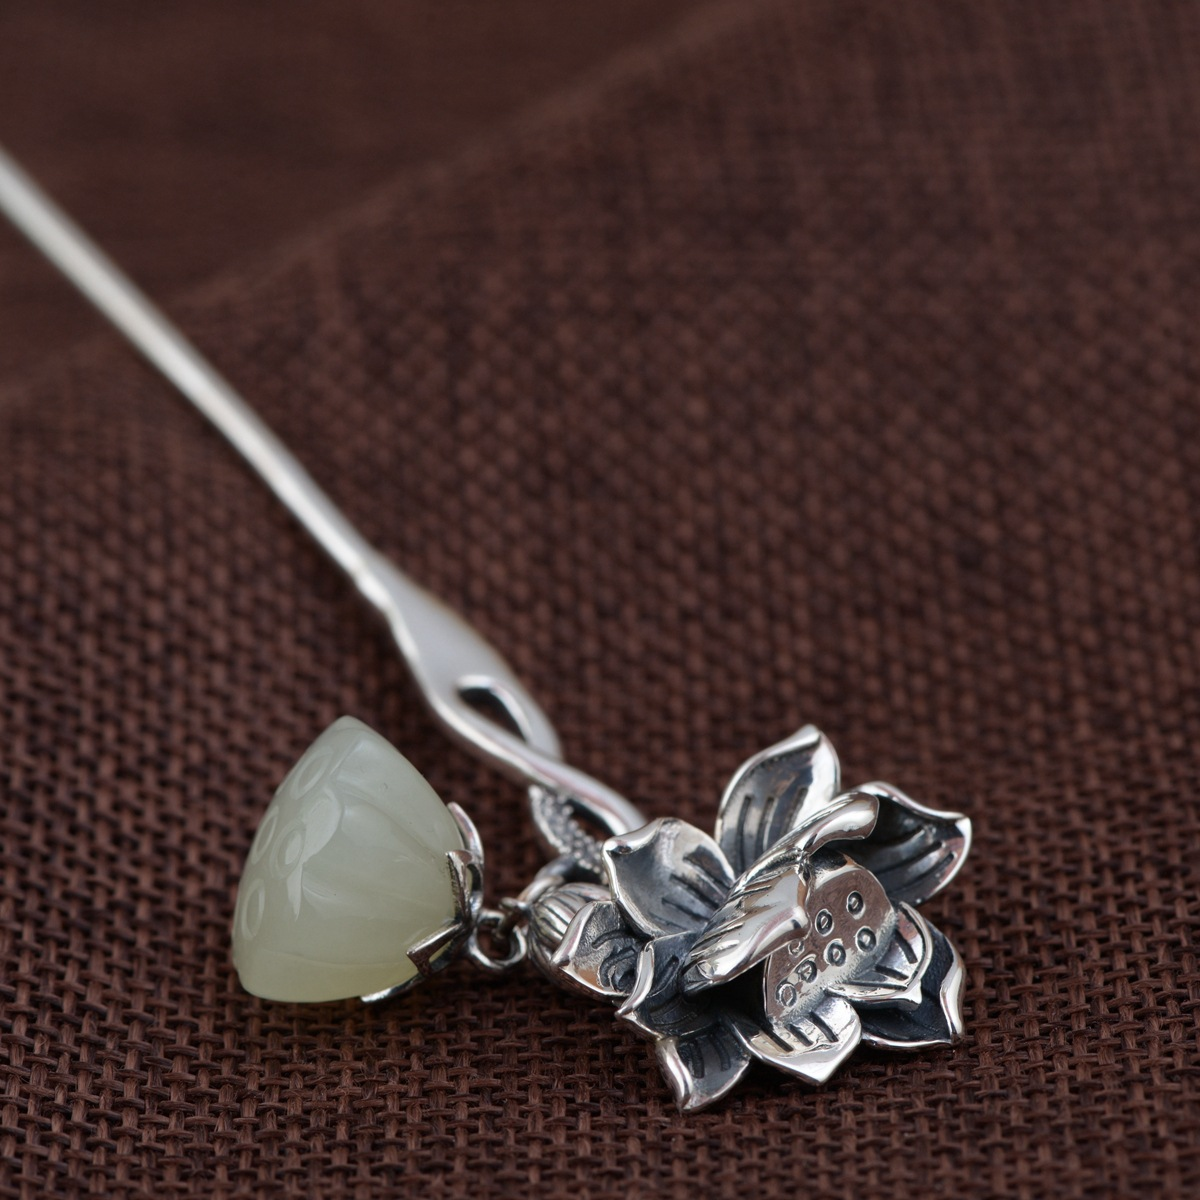 Lotus Thai Silver Hair Stick Vintage Dangle Silver Chinese Hairpin Flower Hair Fork Hair Jewelry Hair Accessories WIGO1152 цена